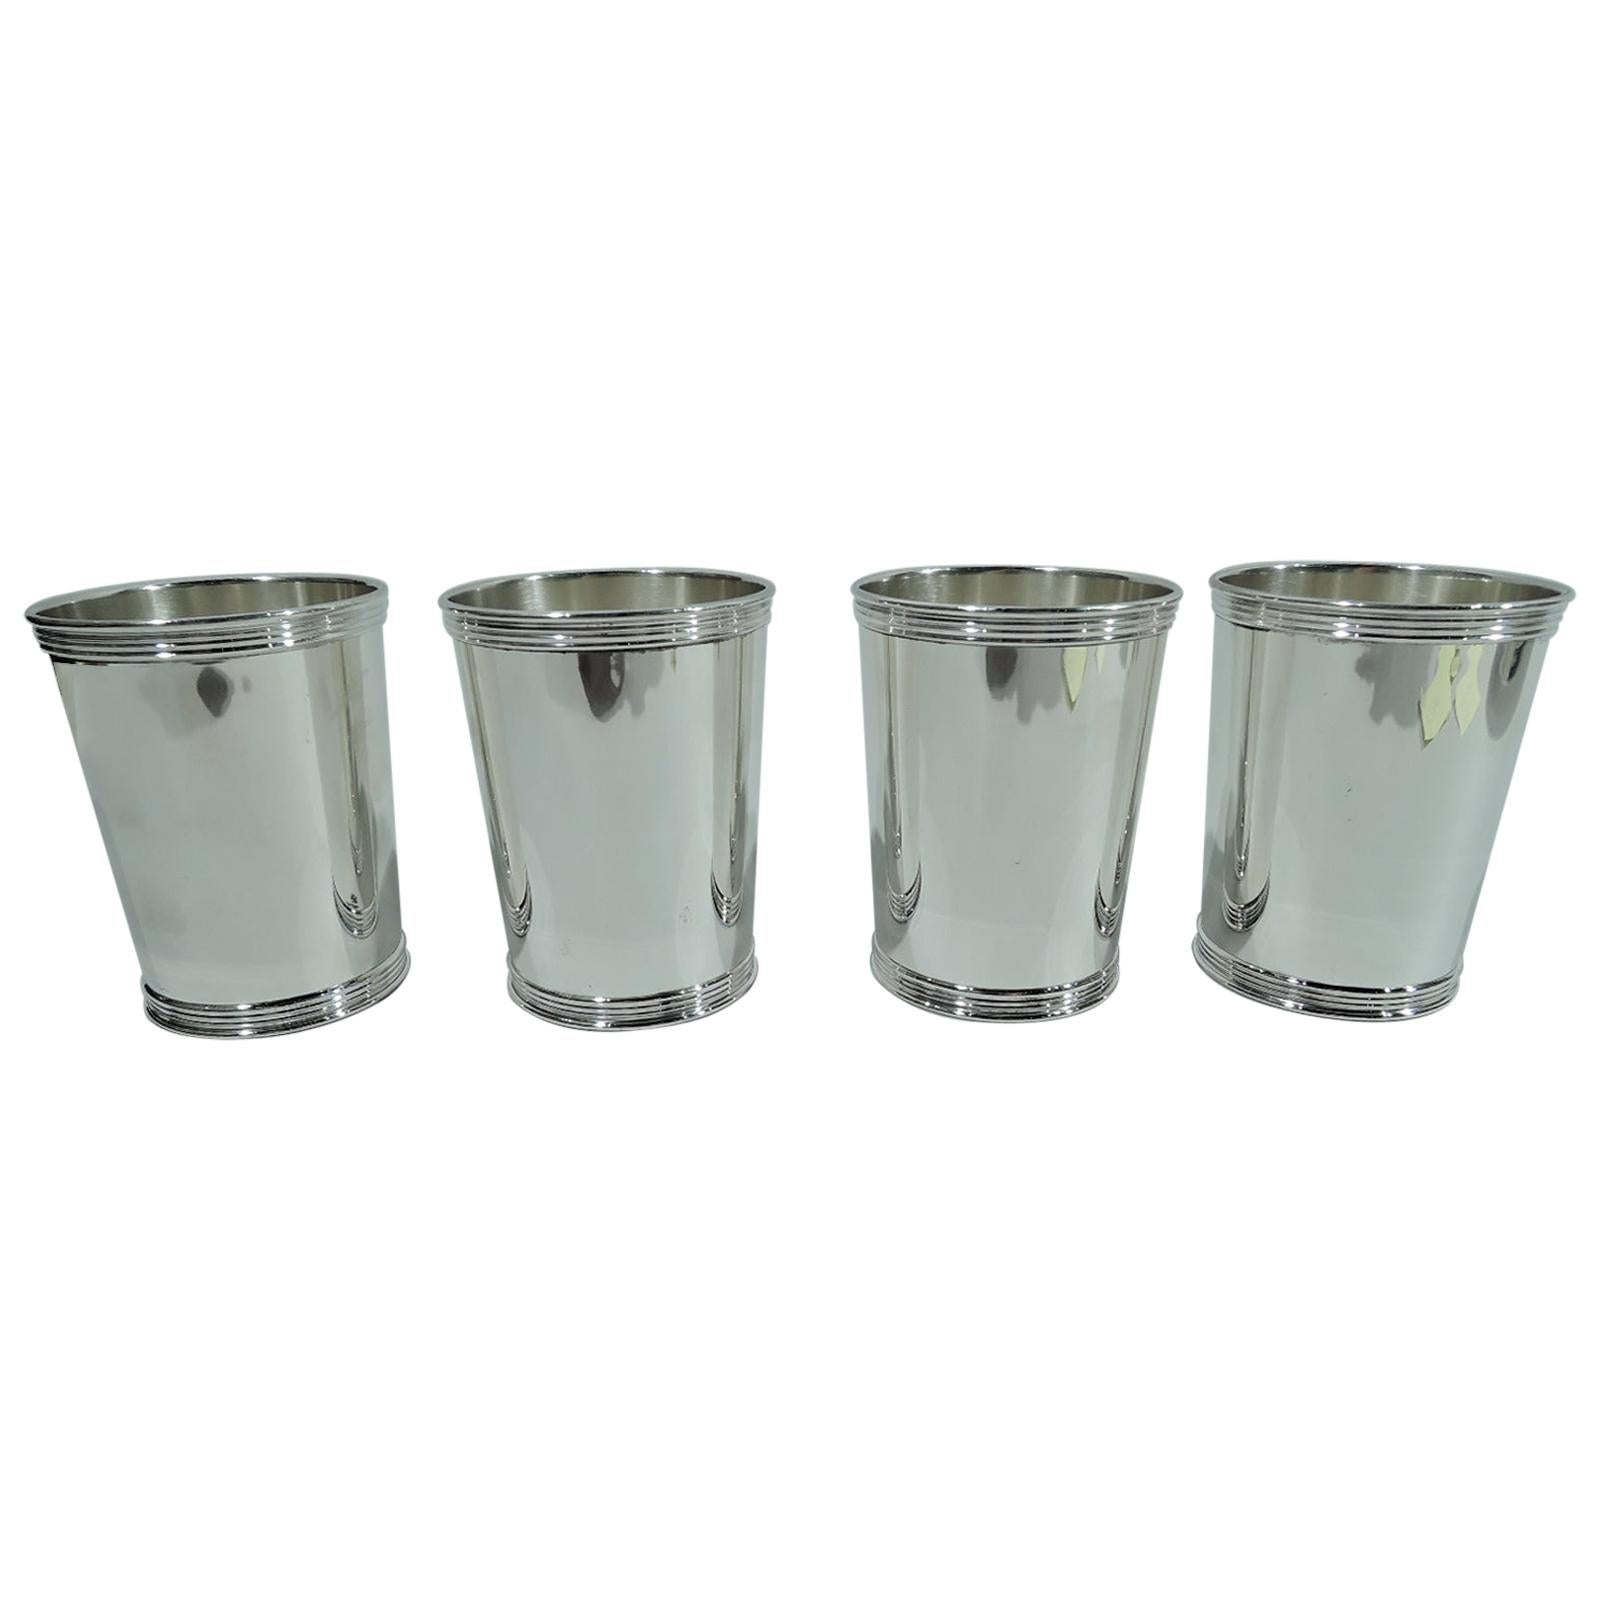 Real Deal Southern Barware, Set of 4 Trees Kentucky Mint Julep Cups